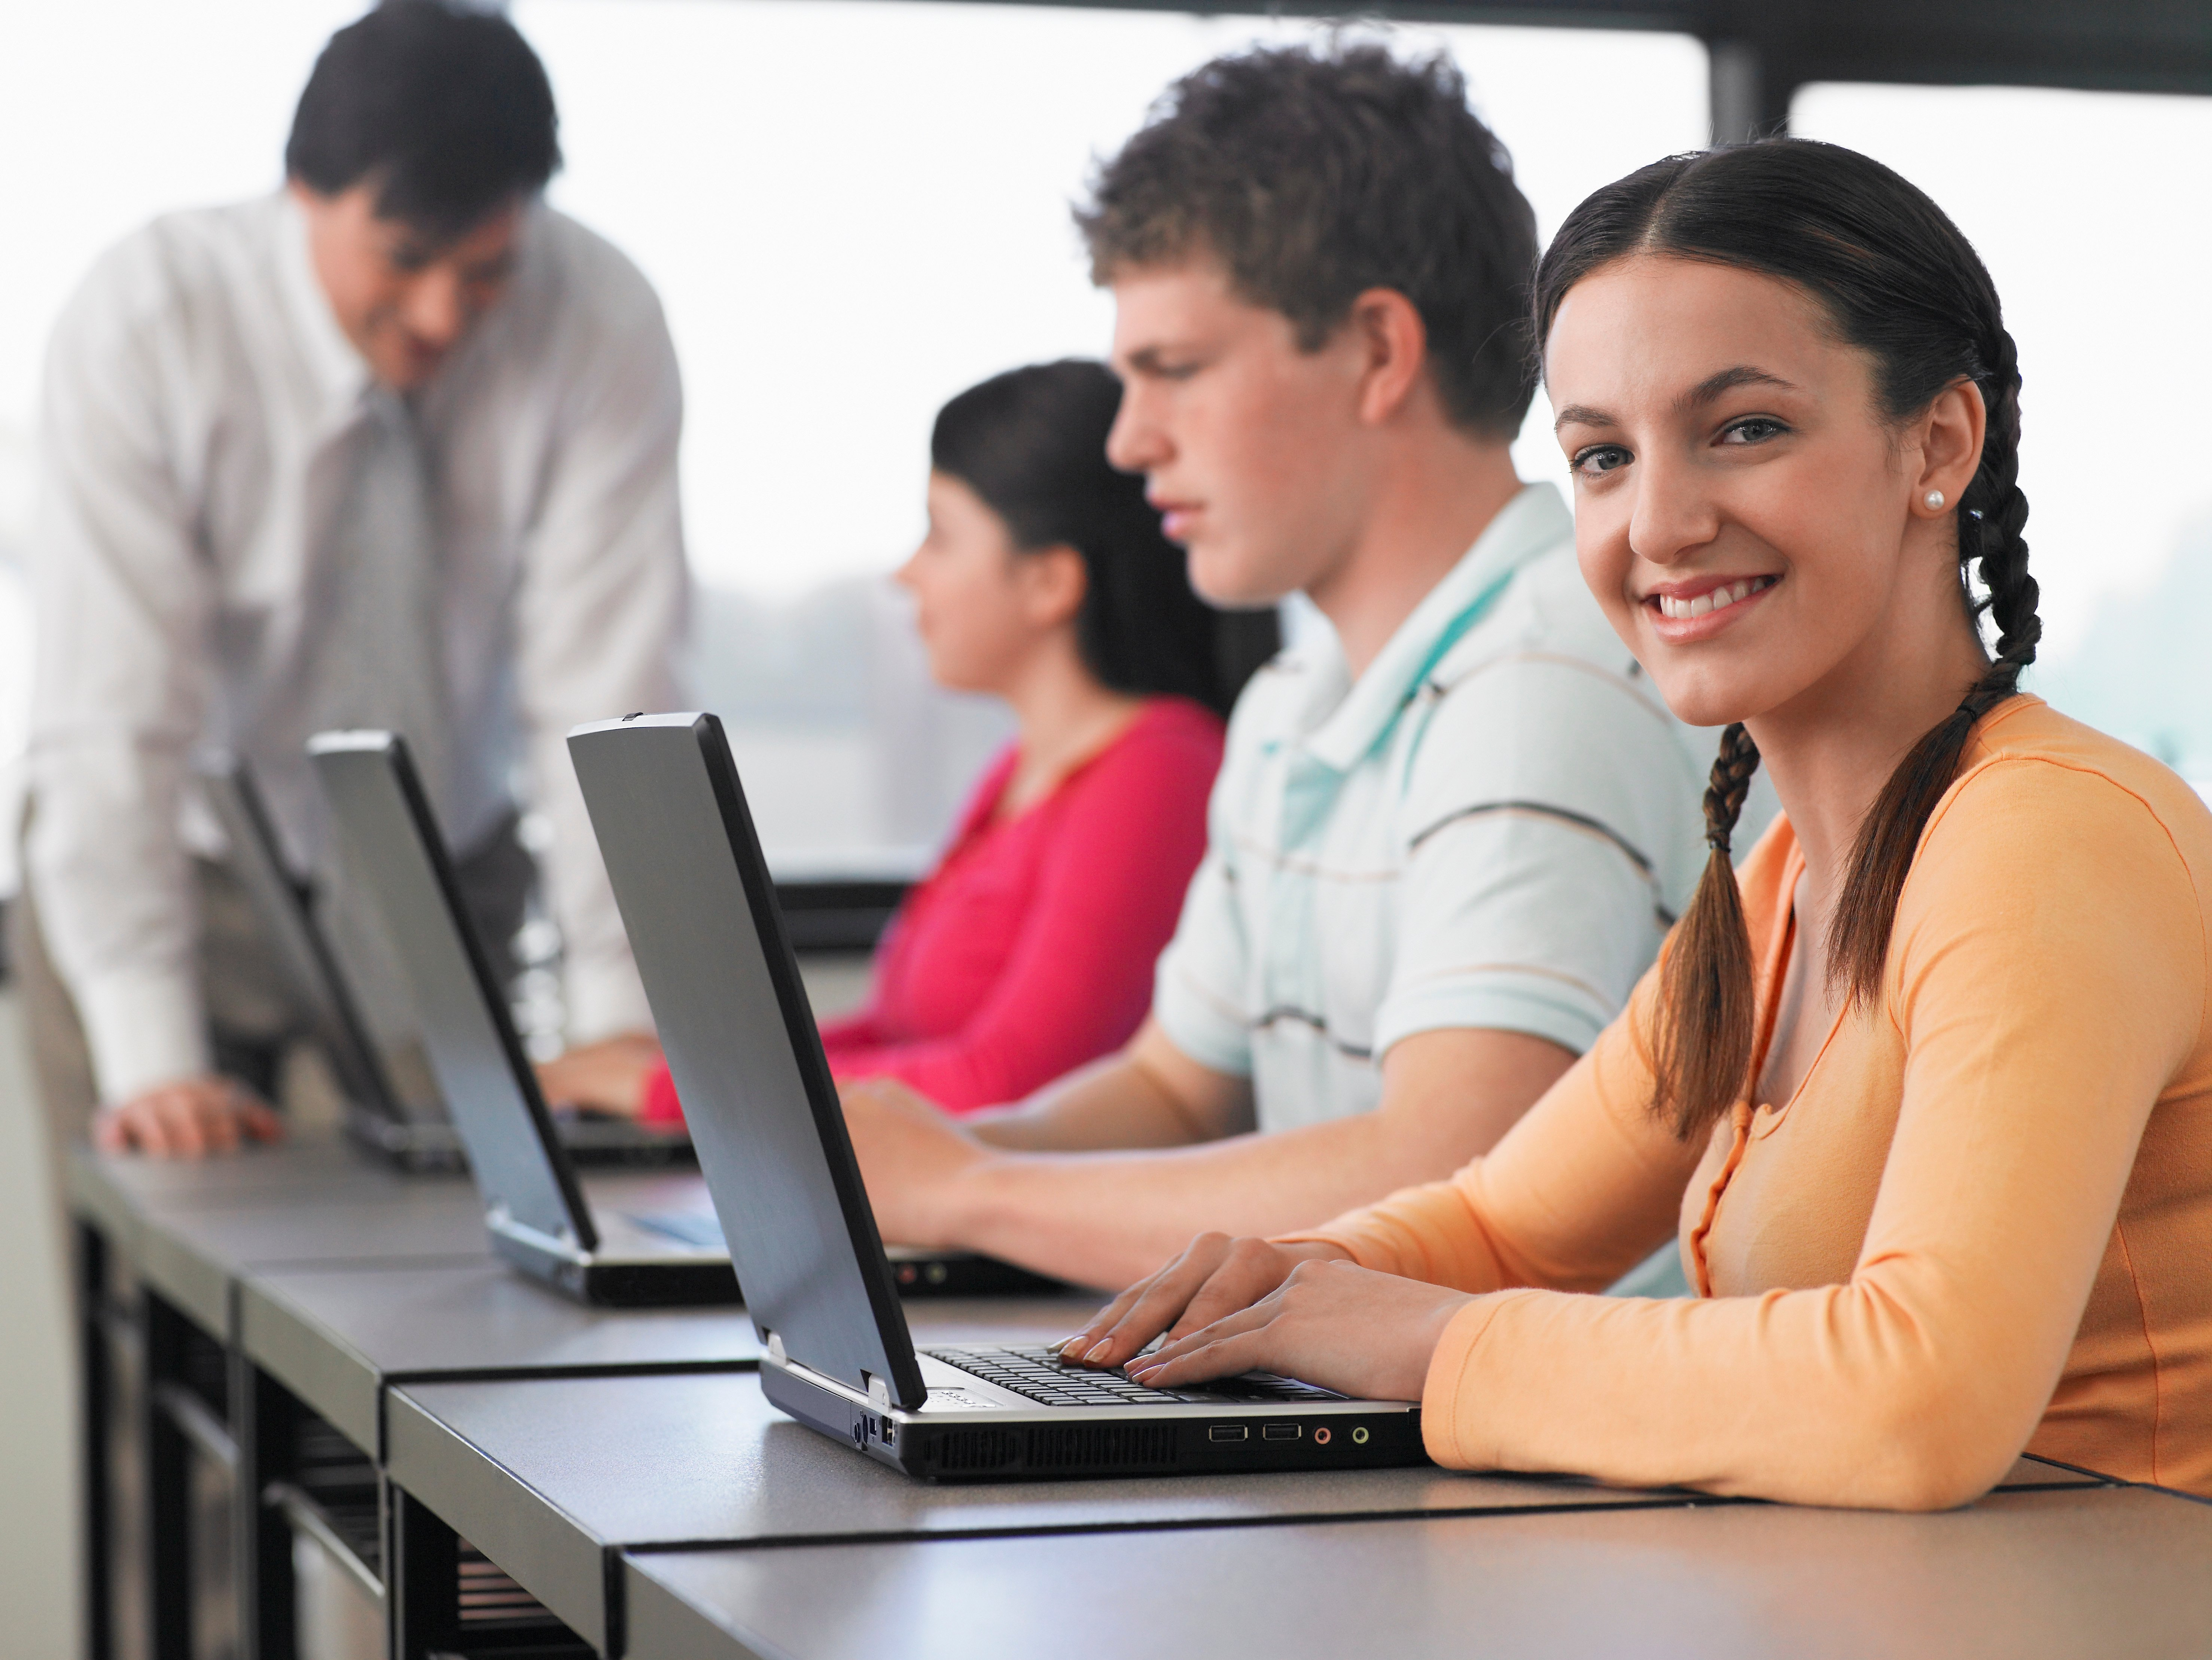 Office 365 vs. Google apps for Education - which one is best?